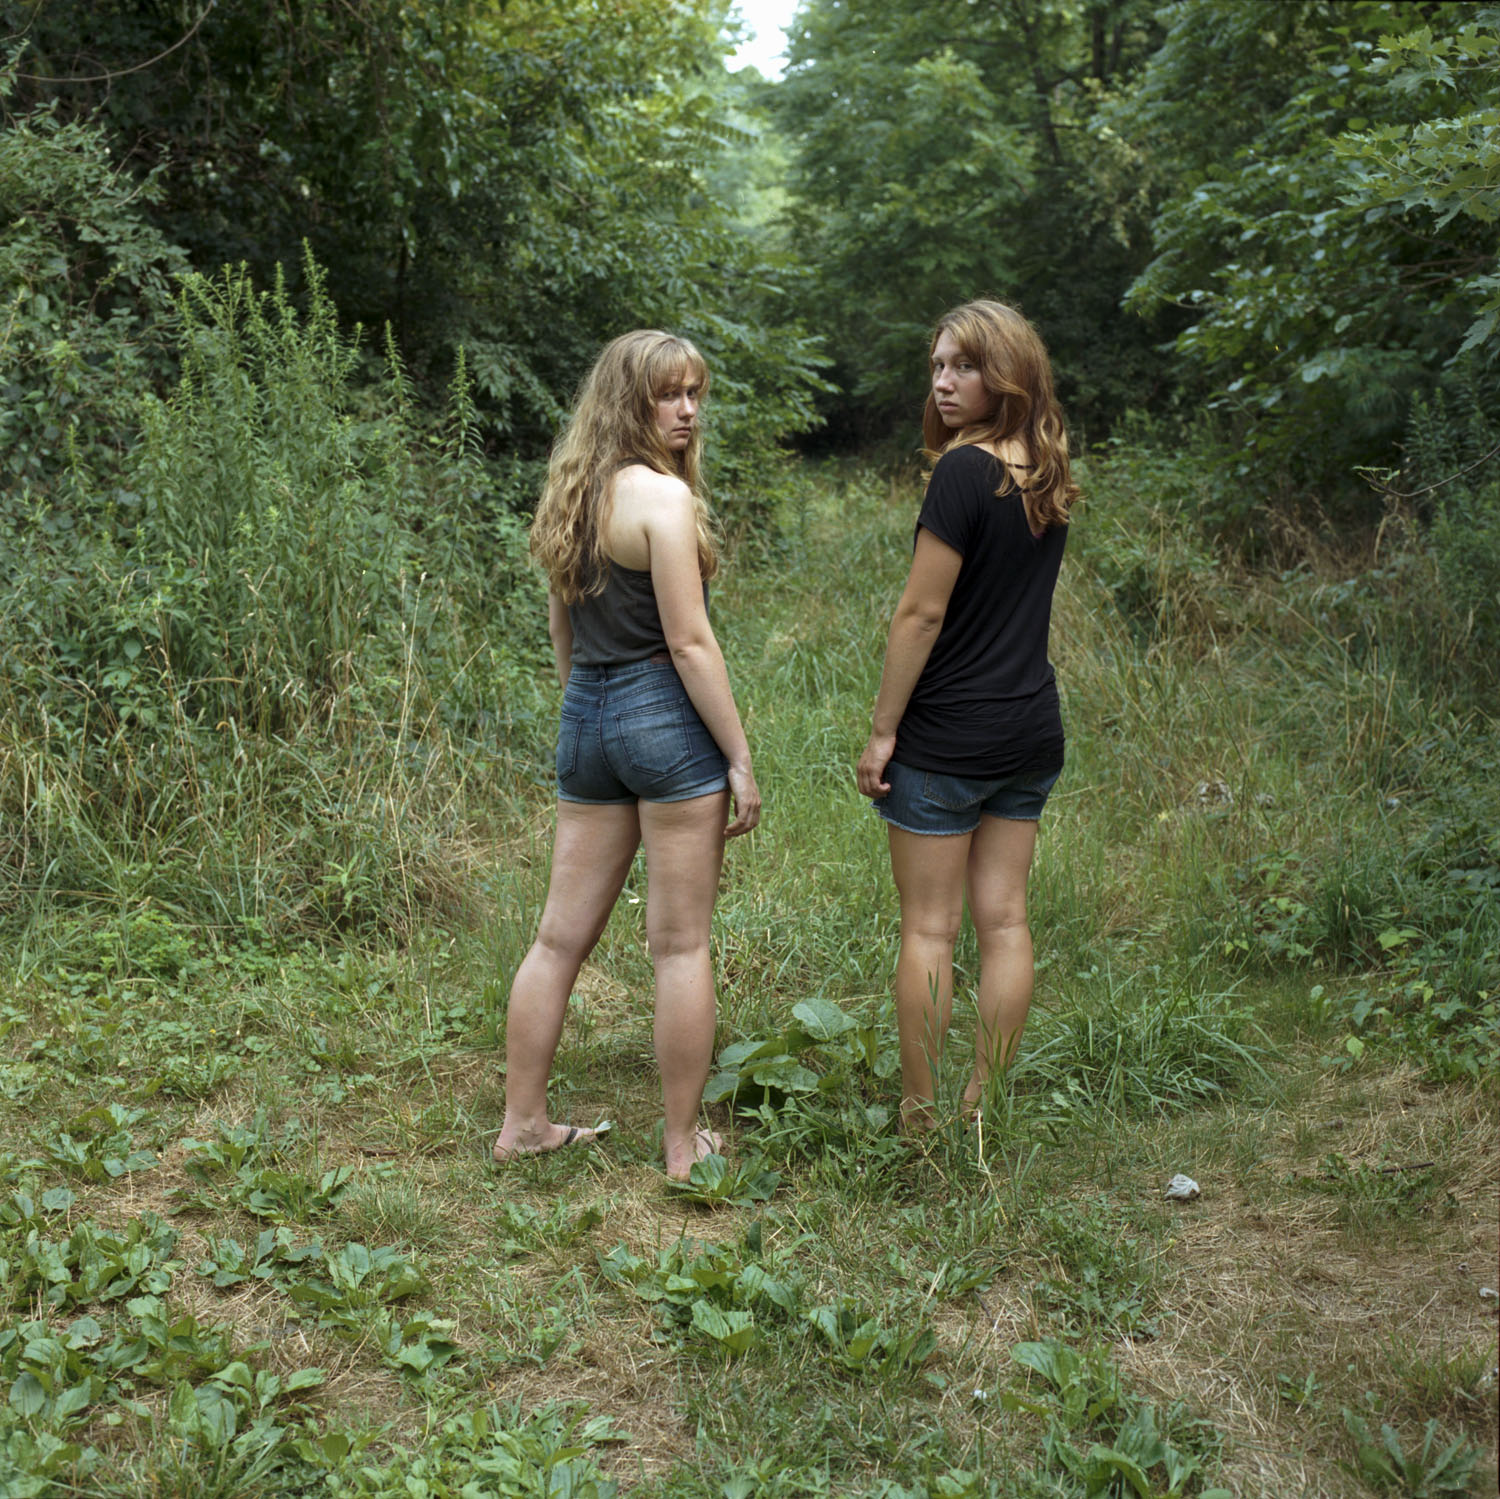 casey and emily  (far)